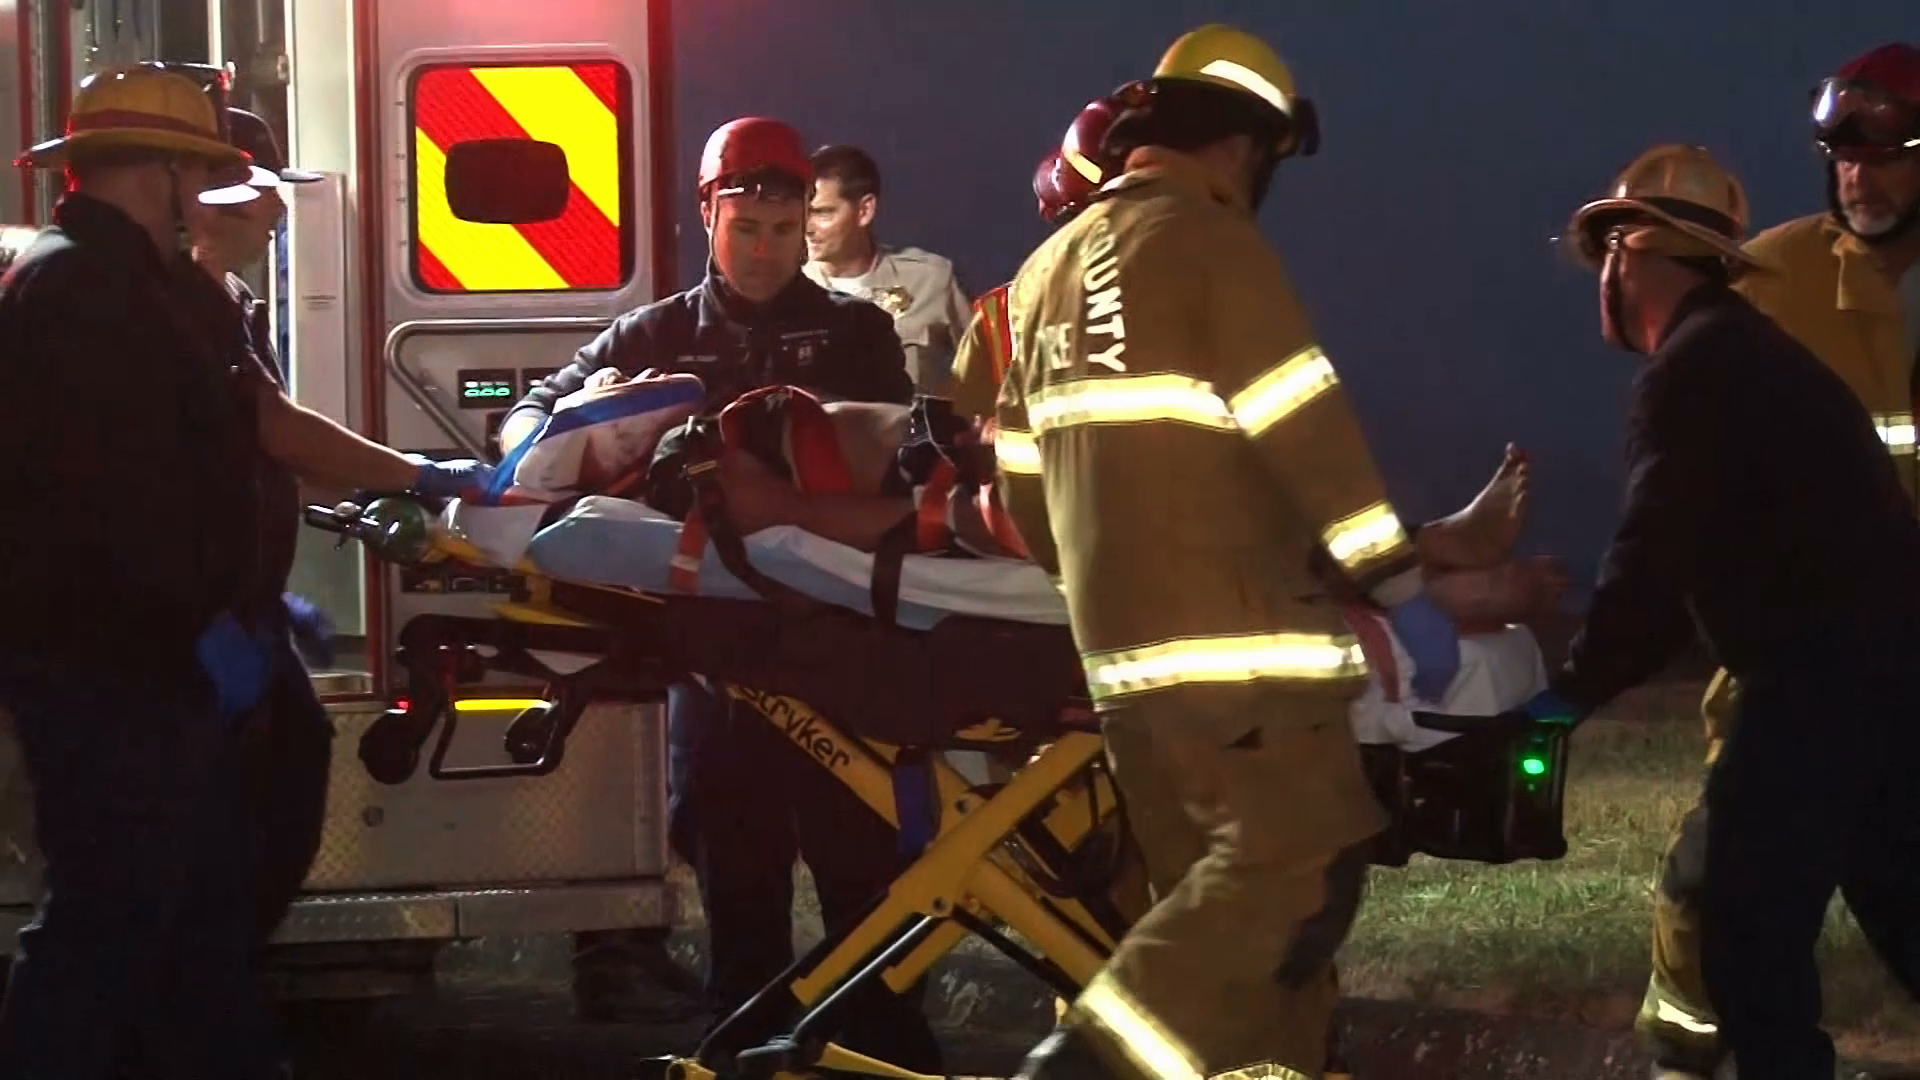 A man identified as Betai Koffi is loaded into an ambulance after being shot by deputies in Bodega Bay on July 4, 2019. (Credit: KPIX via CNN)